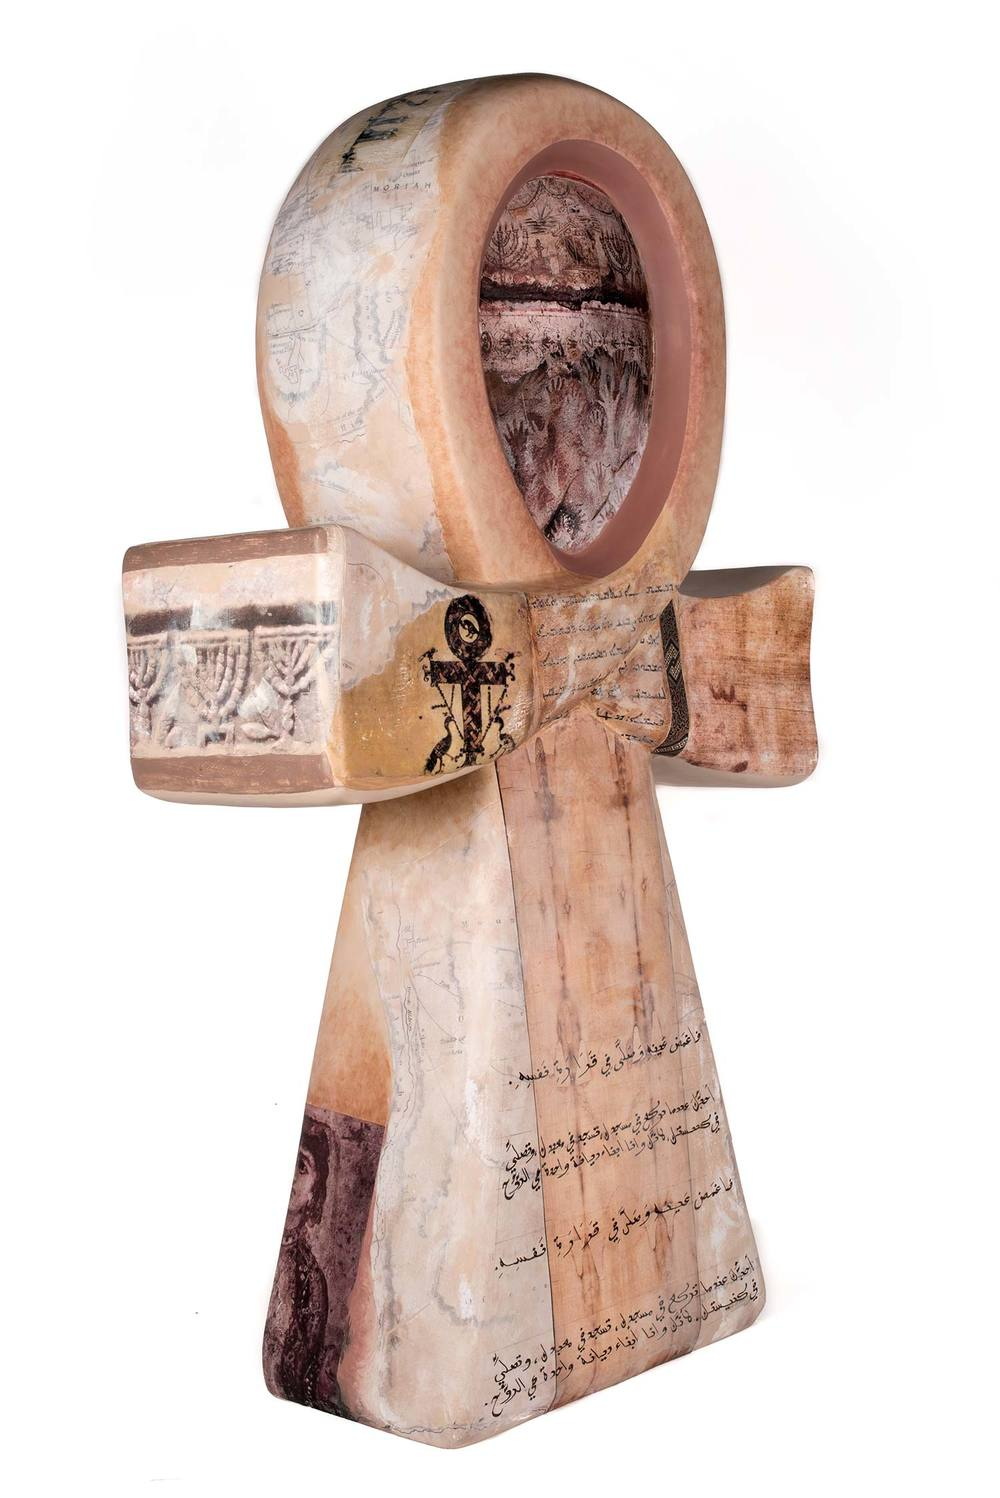 Syncretic Ankh   Acrylics, pigments, gesso, paper, ink pen and pencil on fiberglass base with matt acrylic wax varnish finish. width 47 x height 112.5 x depth 23.5 cm 2016